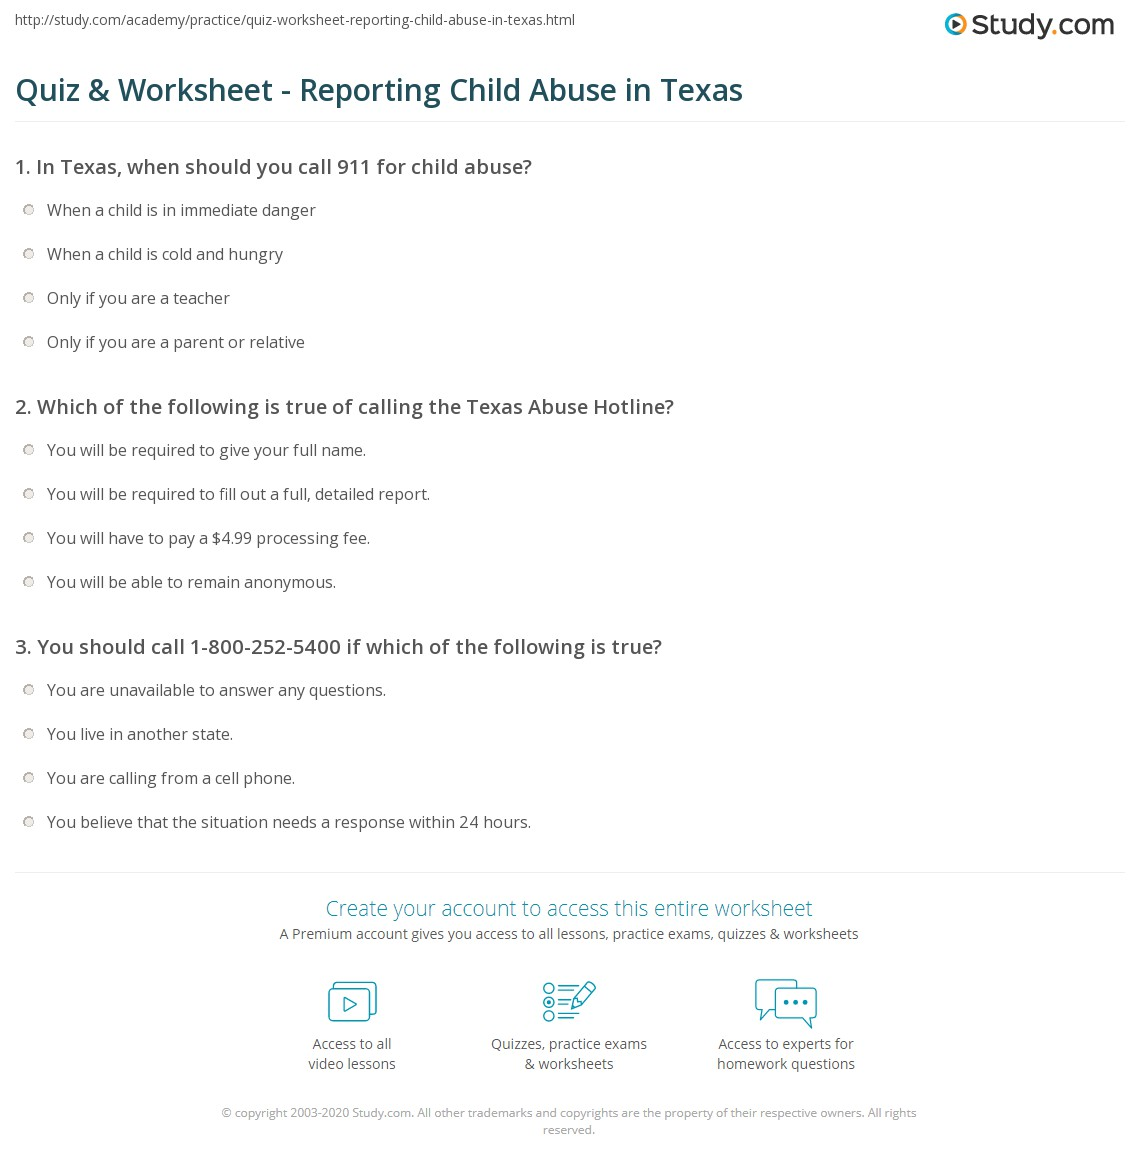 Quiz & Worksheet - Reporting Child Abuse in Texas | Study com